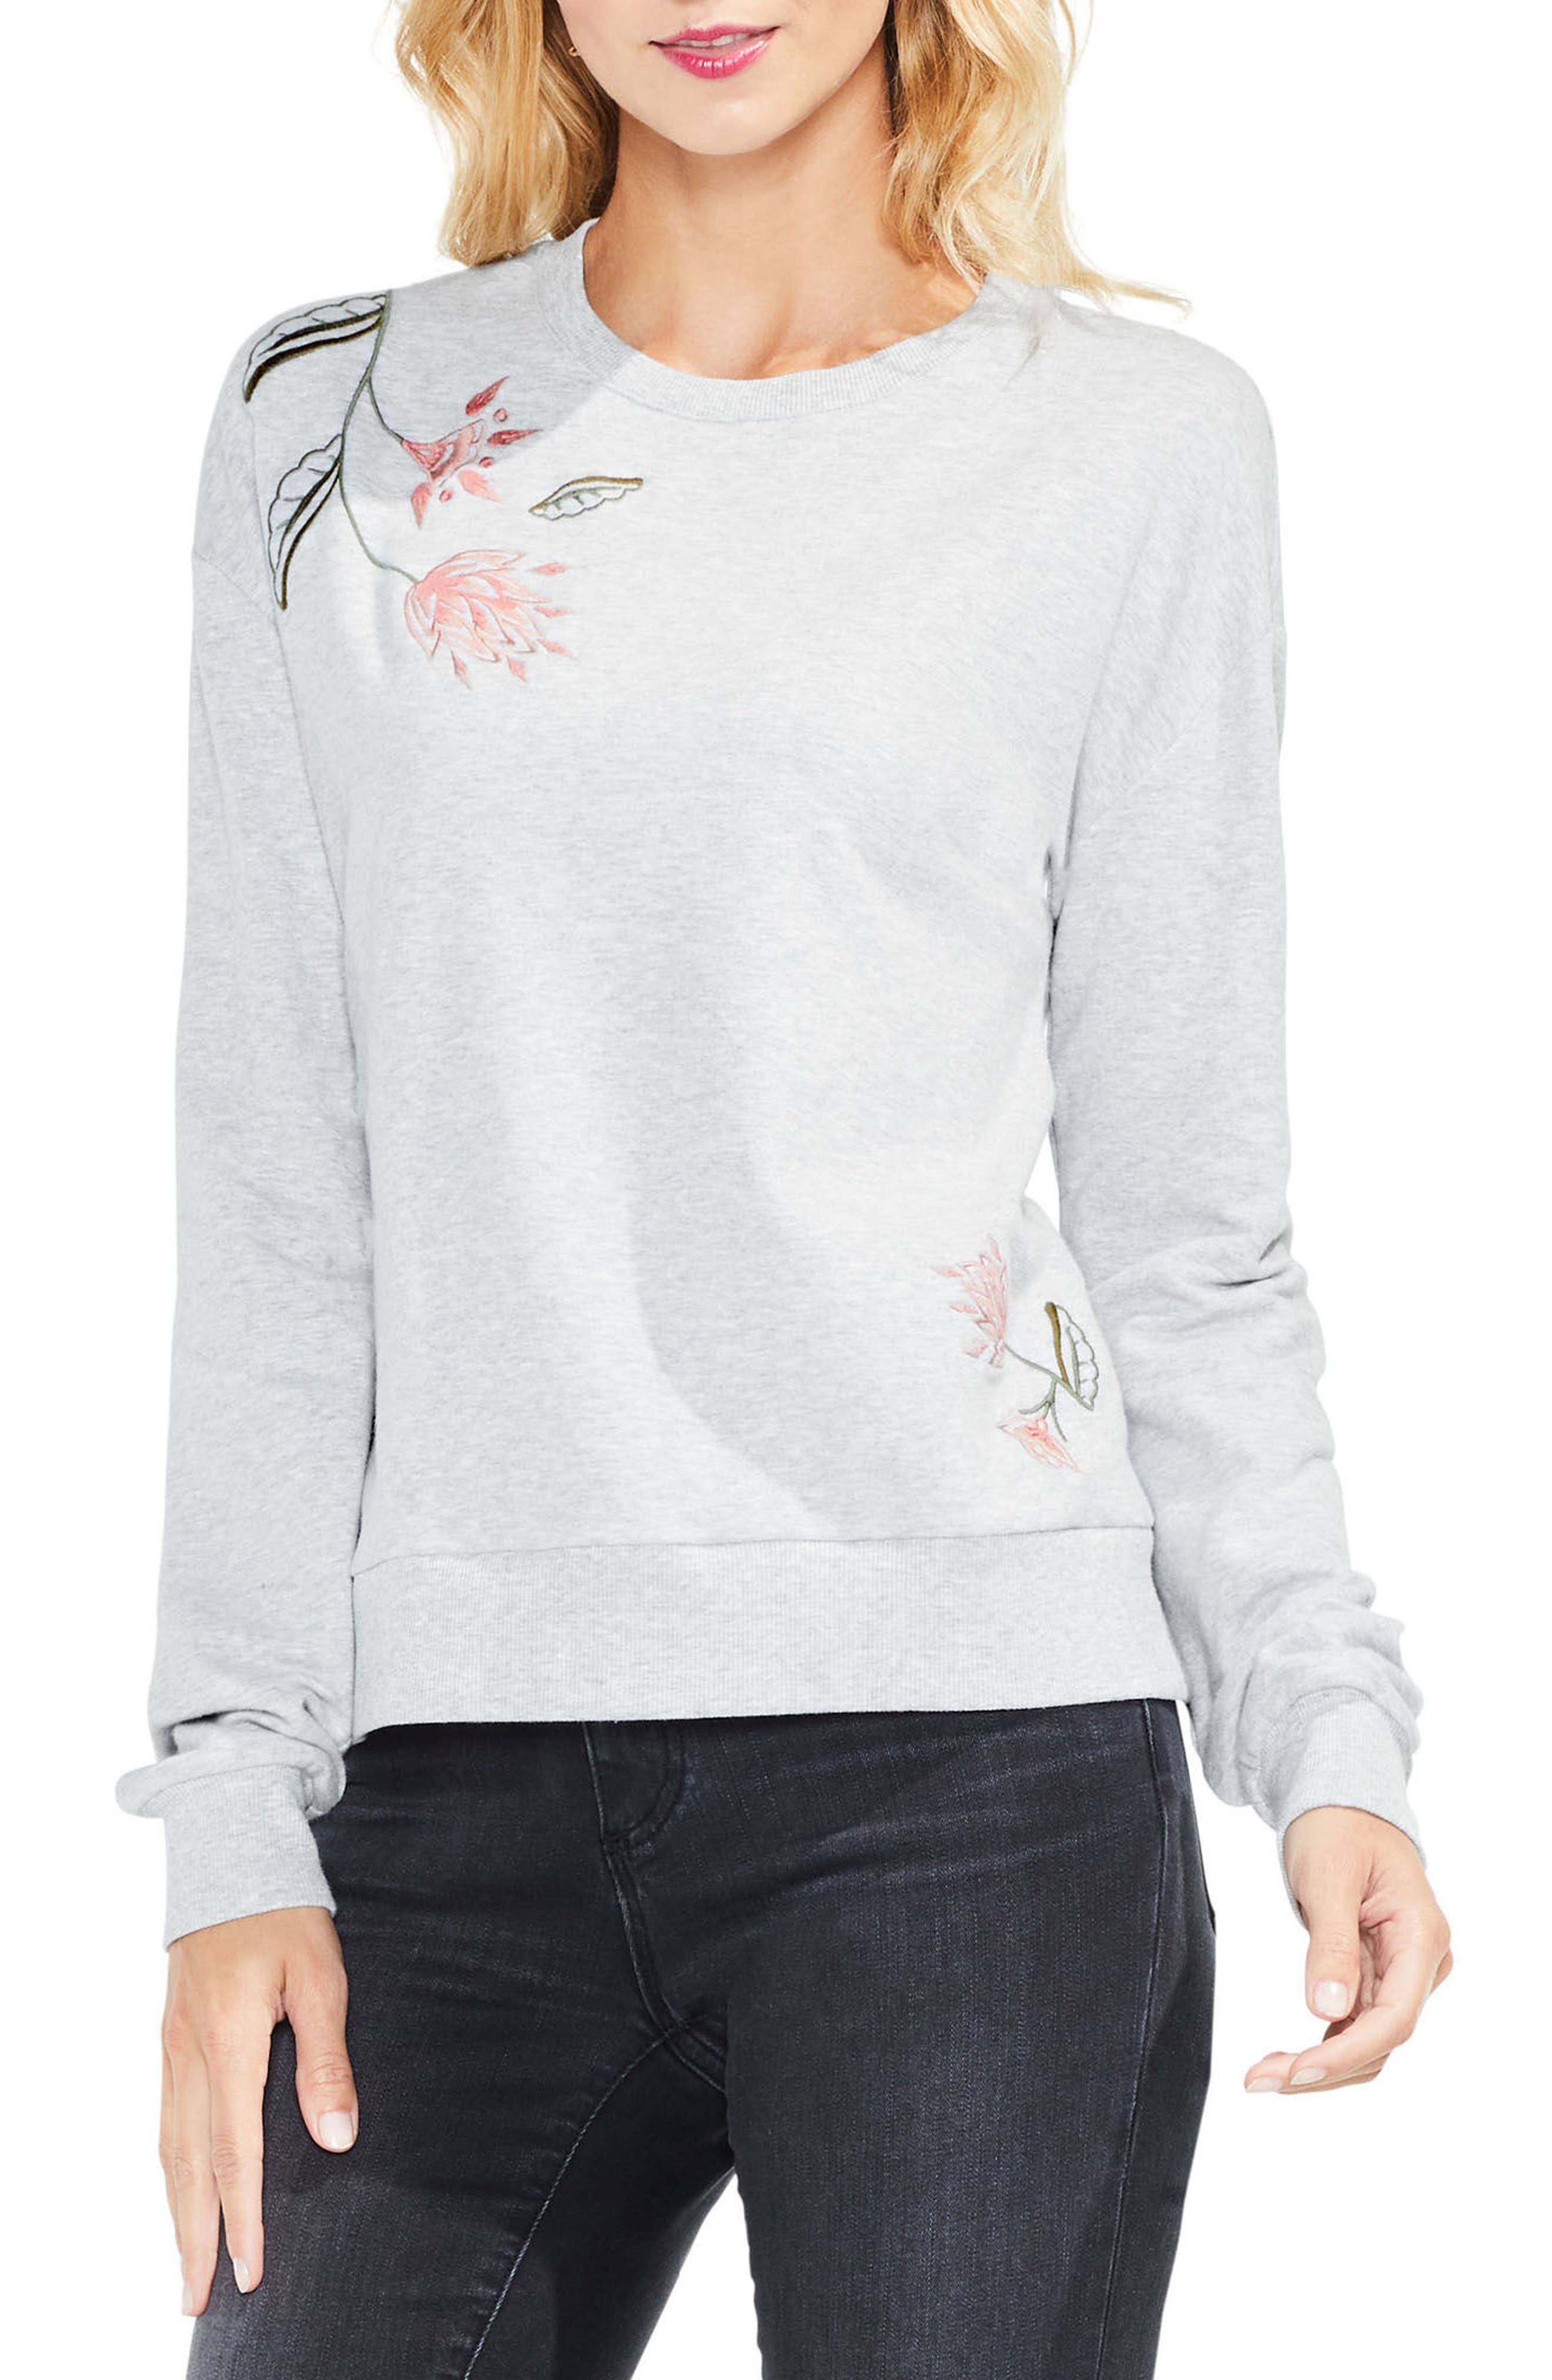 Alternate Image 1 Selected - Two by Vince Camuto Embroidered French Terry Top